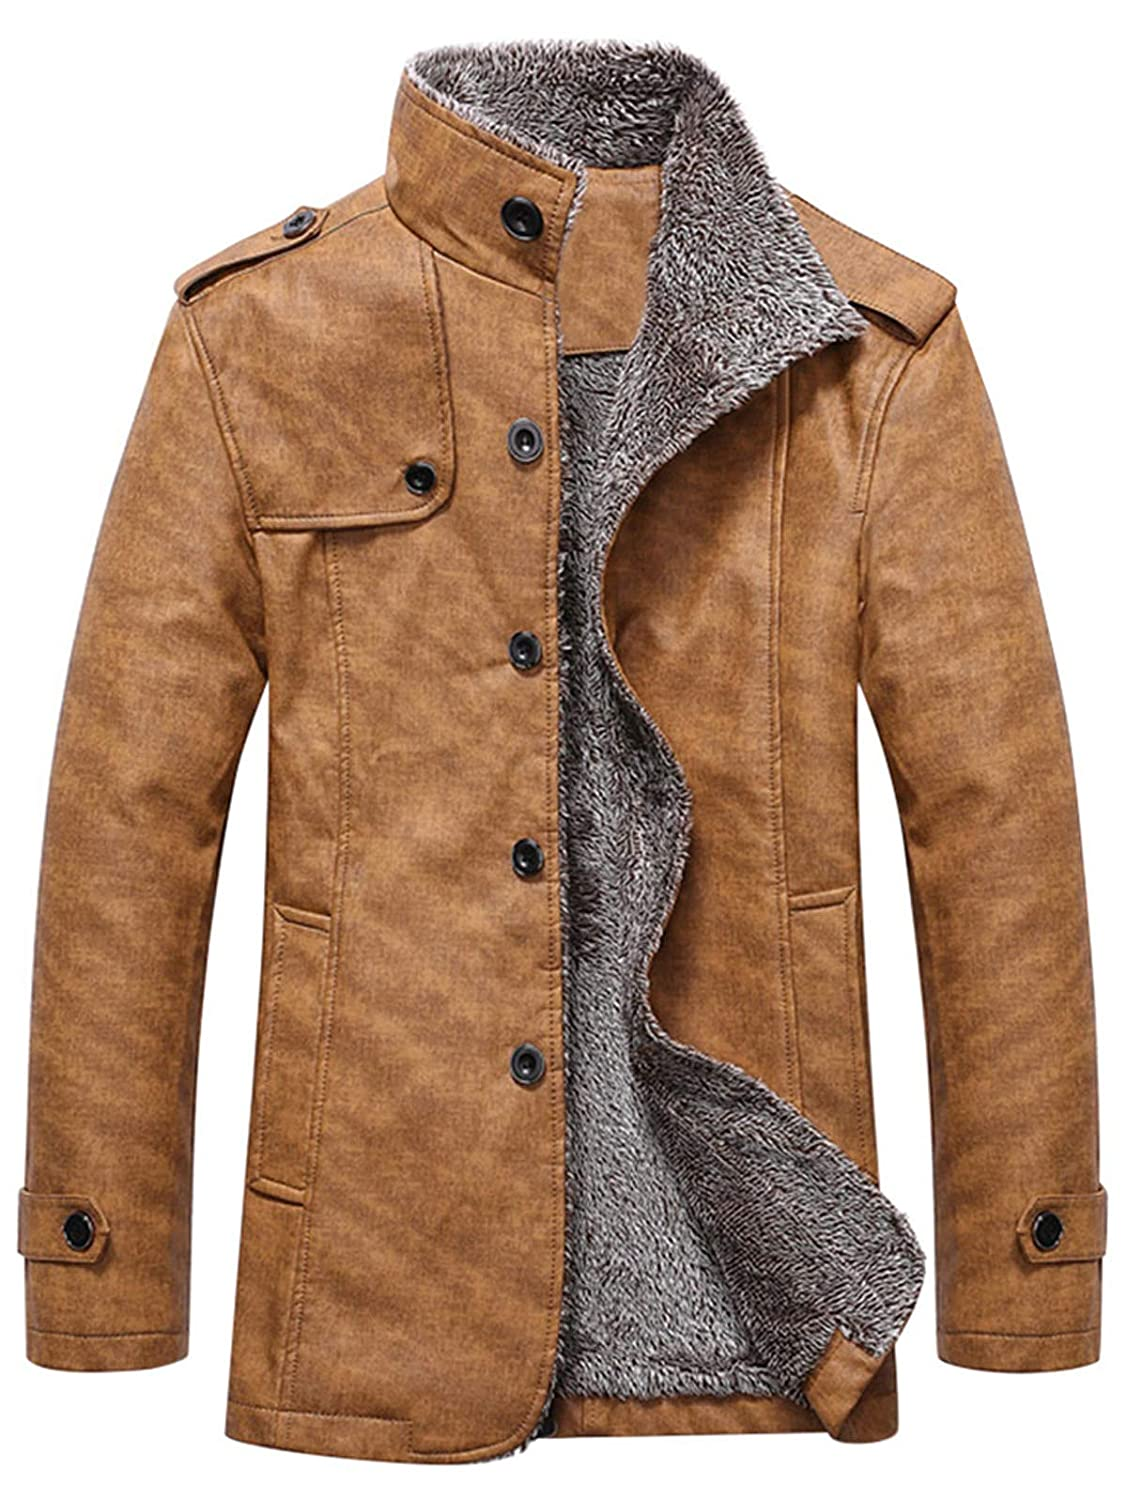 AATop Men's Casual Sherpa Fleece Lined Jacket Warm Coat with Fur Collar Button Winter Quilted Coat